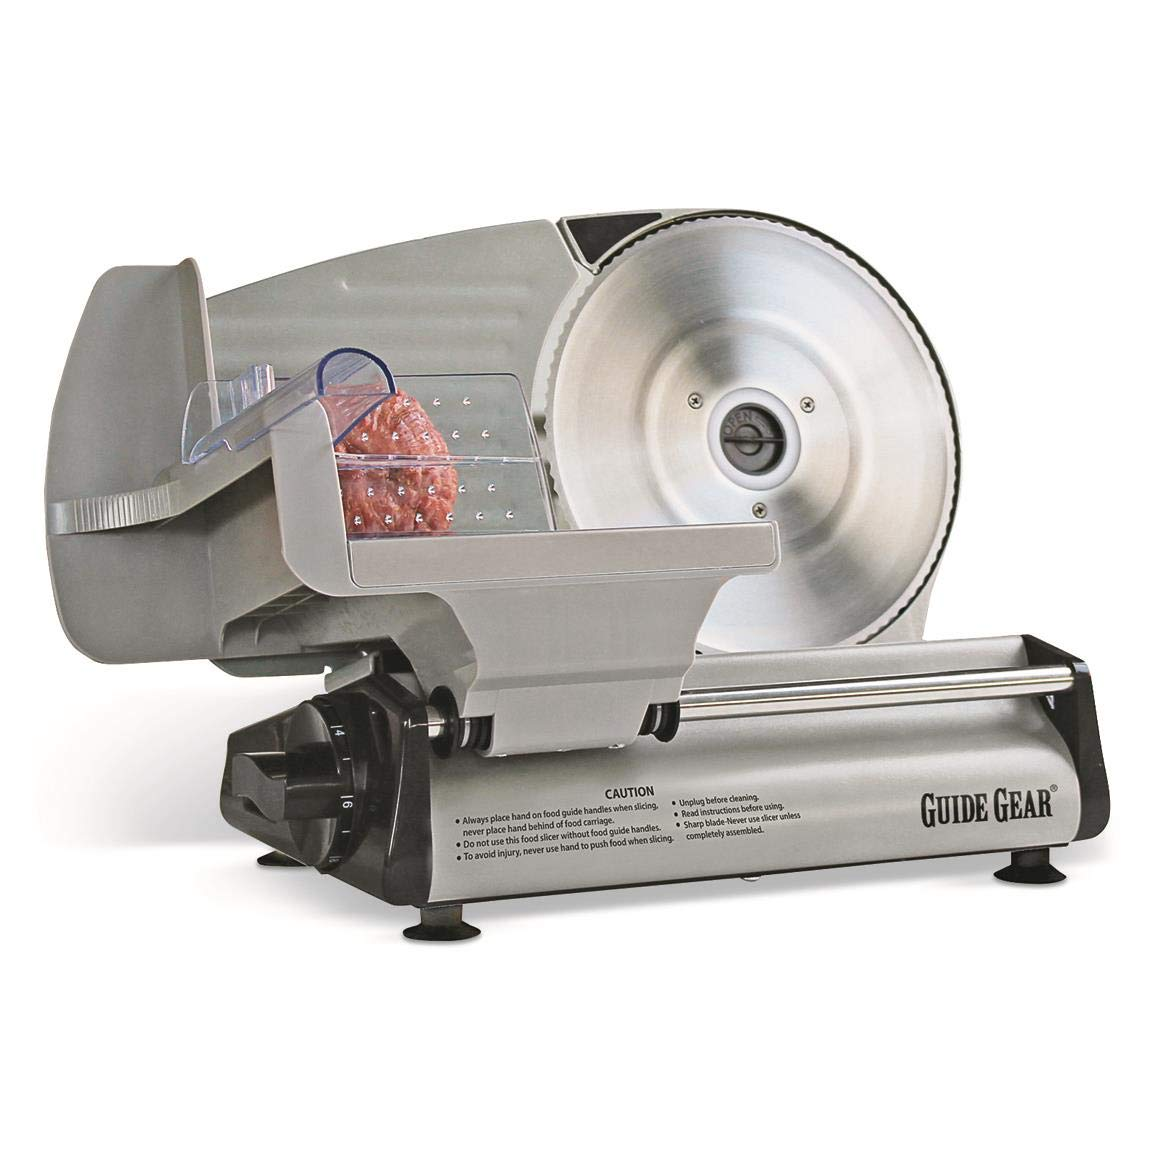 "Guide Gear Electric Stainless Steel Food Slicer, 8.7"" Blade"